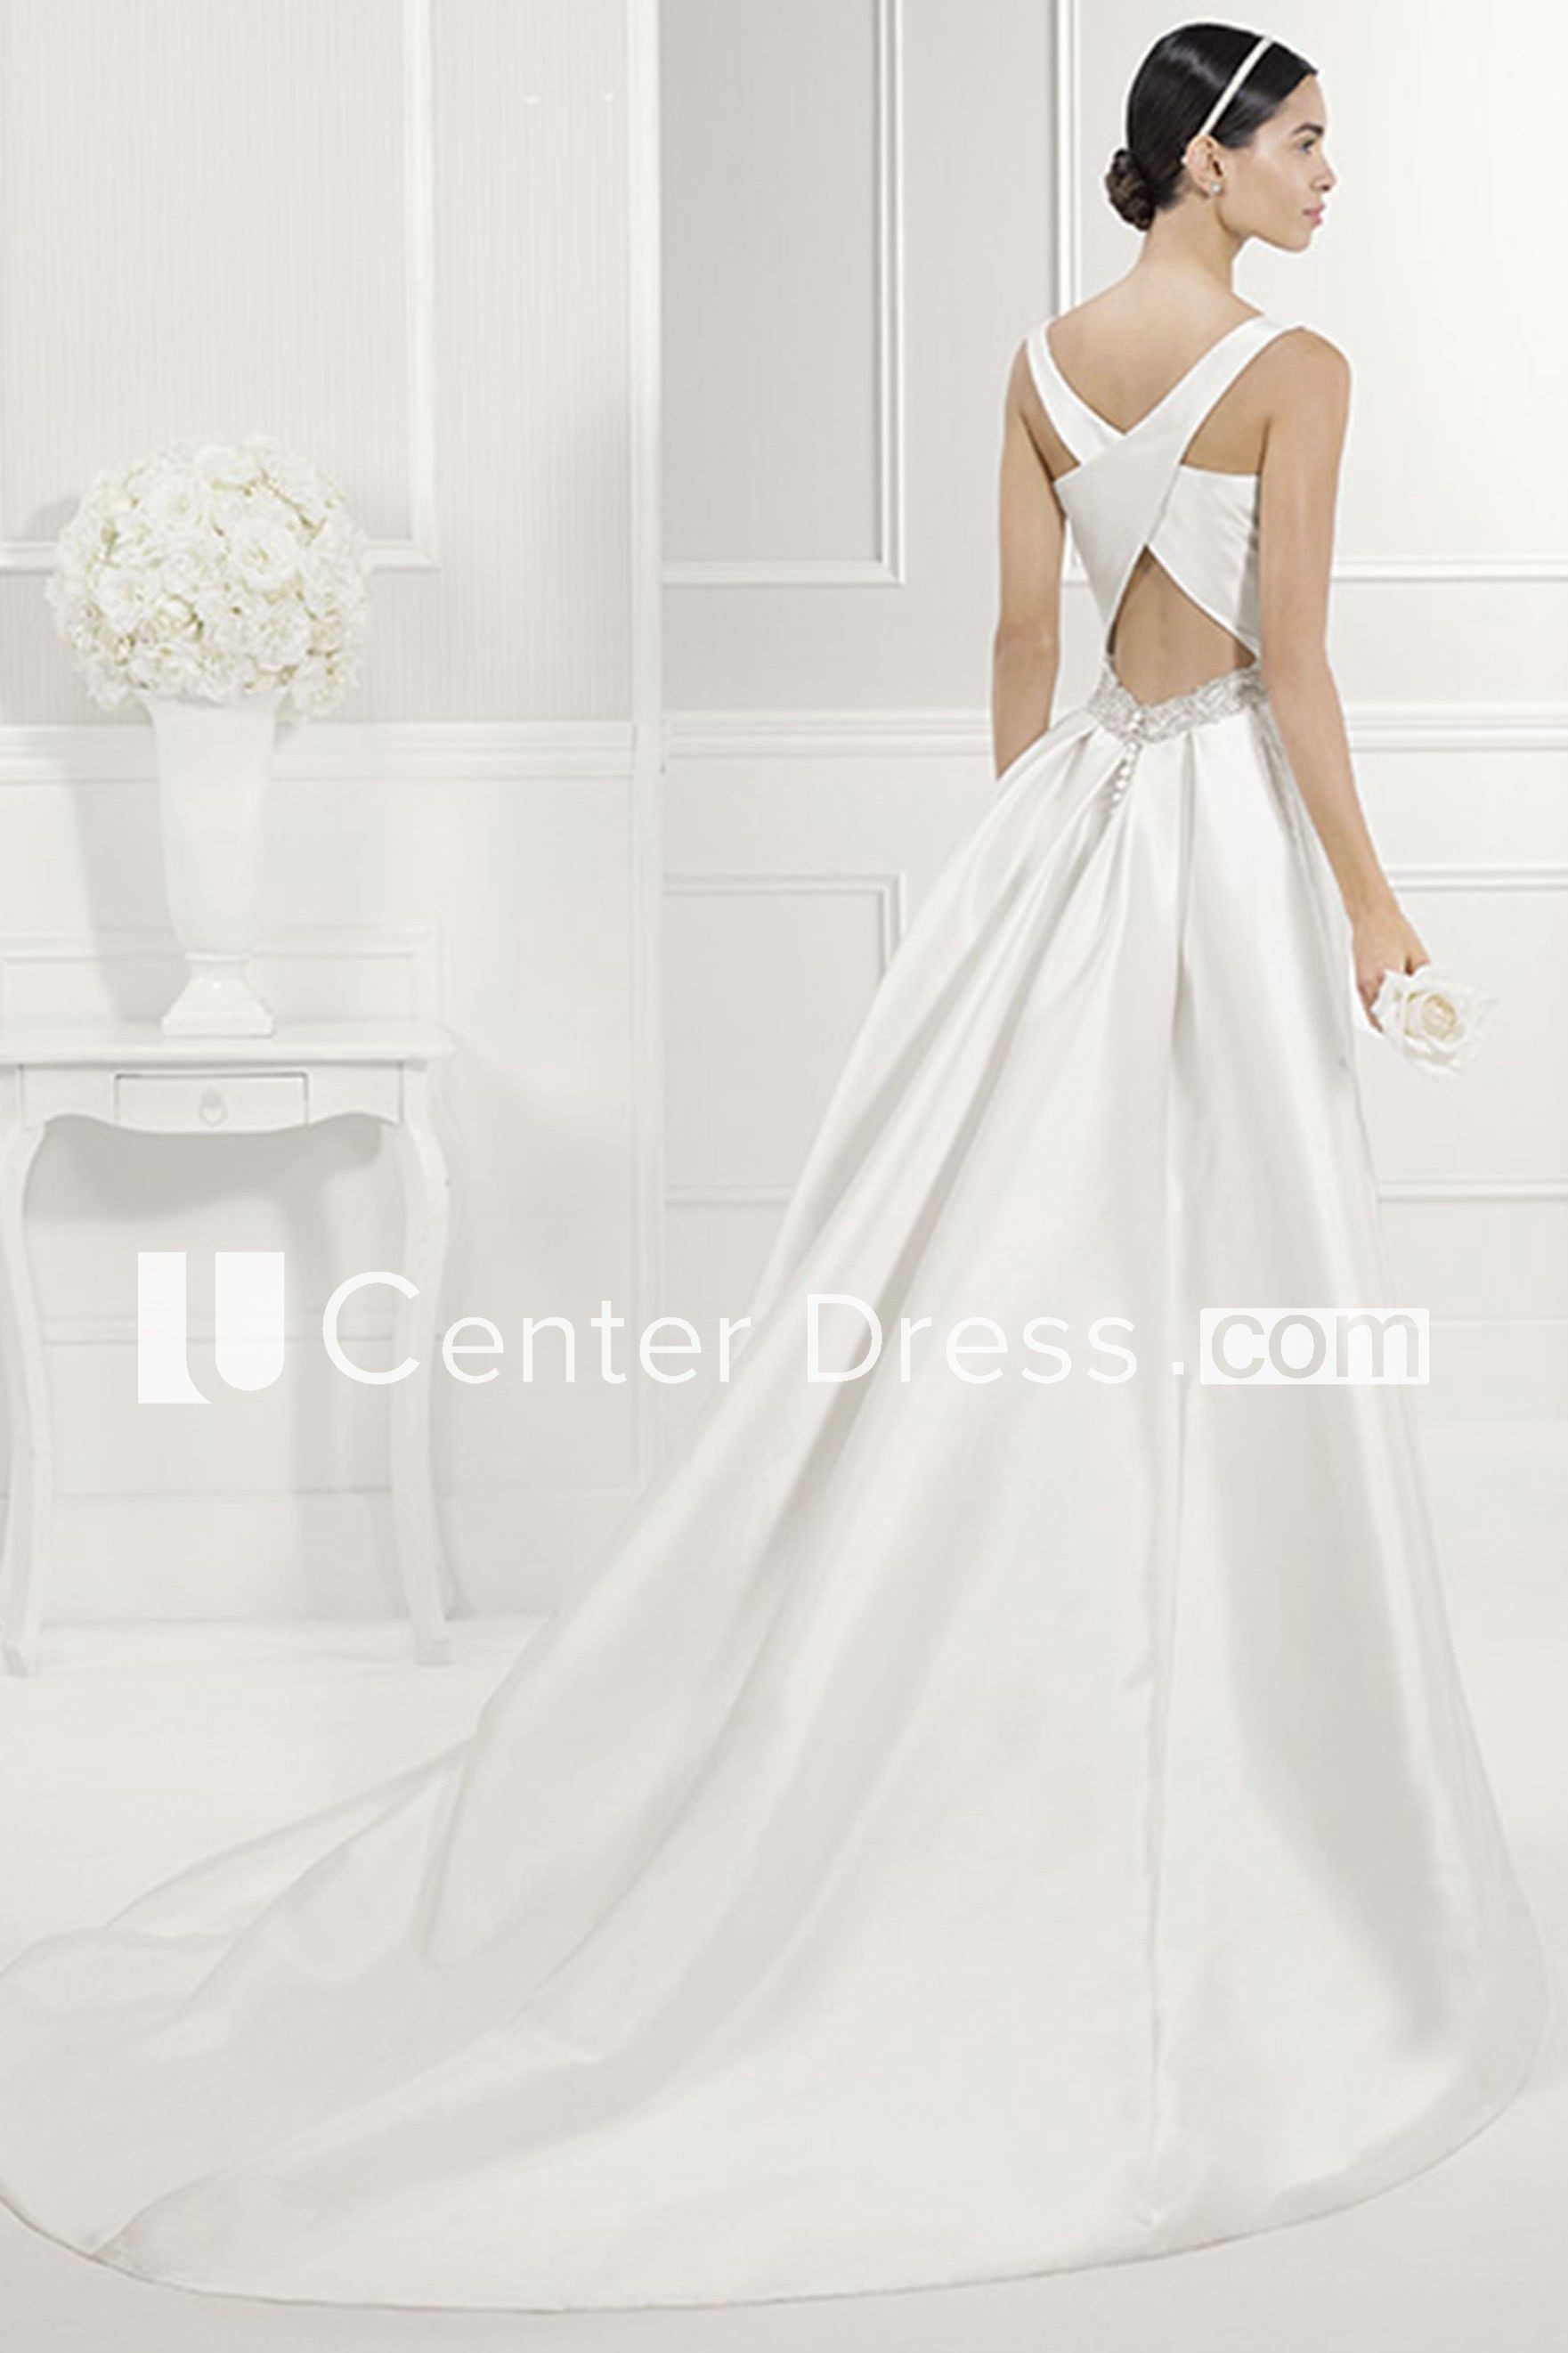 Bateau Neck Sheath Taffeta Bridal Gown With Criss Cross Back Straps Wedding Dresses With Straps Bridal Gowns Gowns